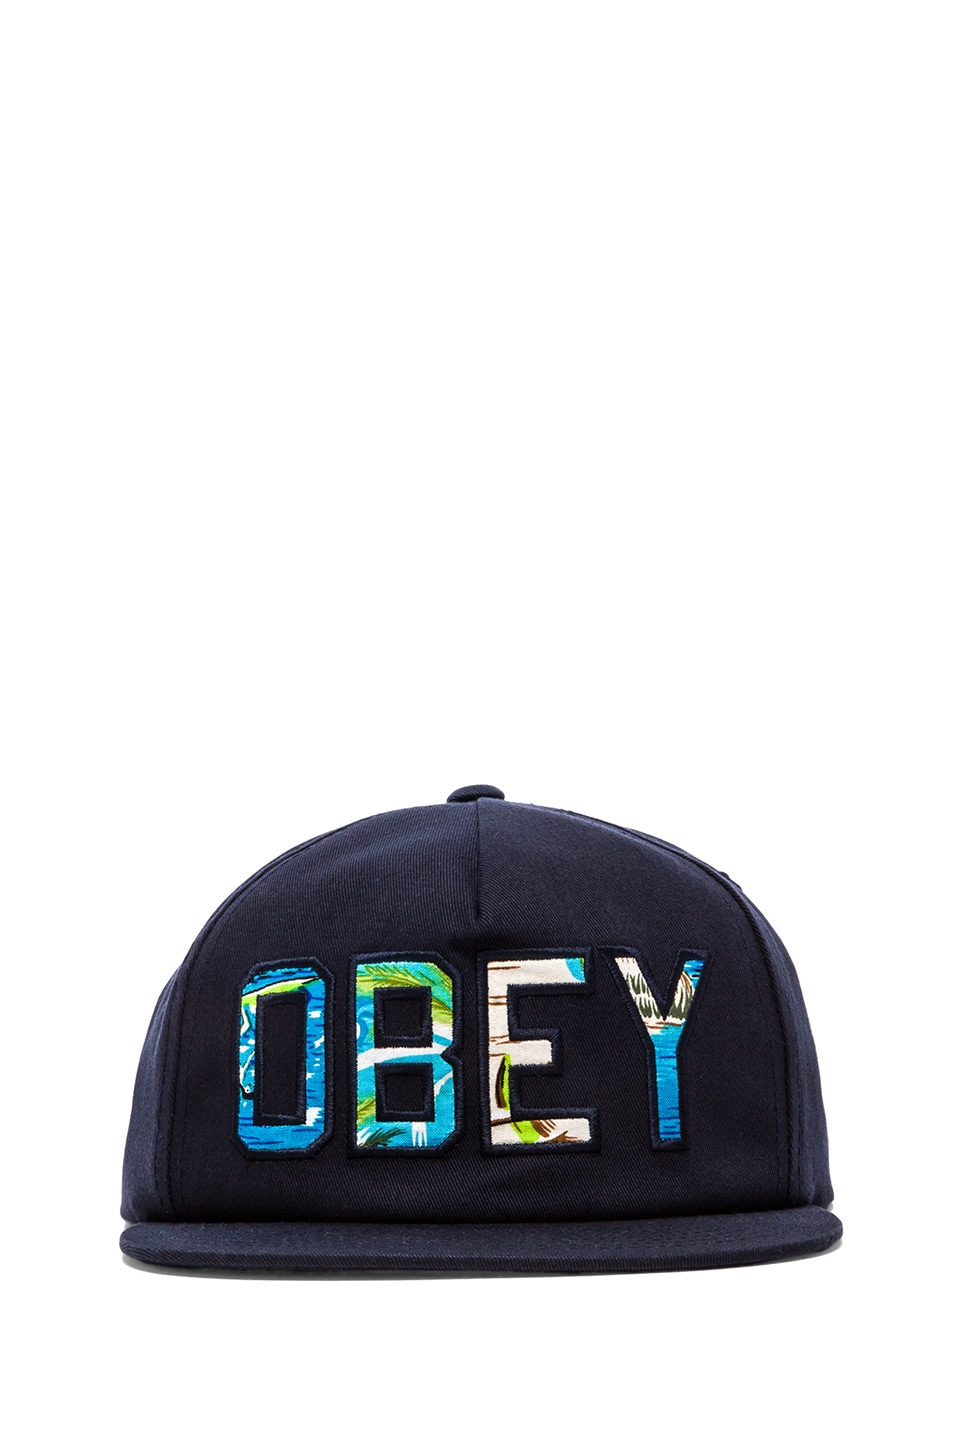 Obey Wharf Hat in Navy